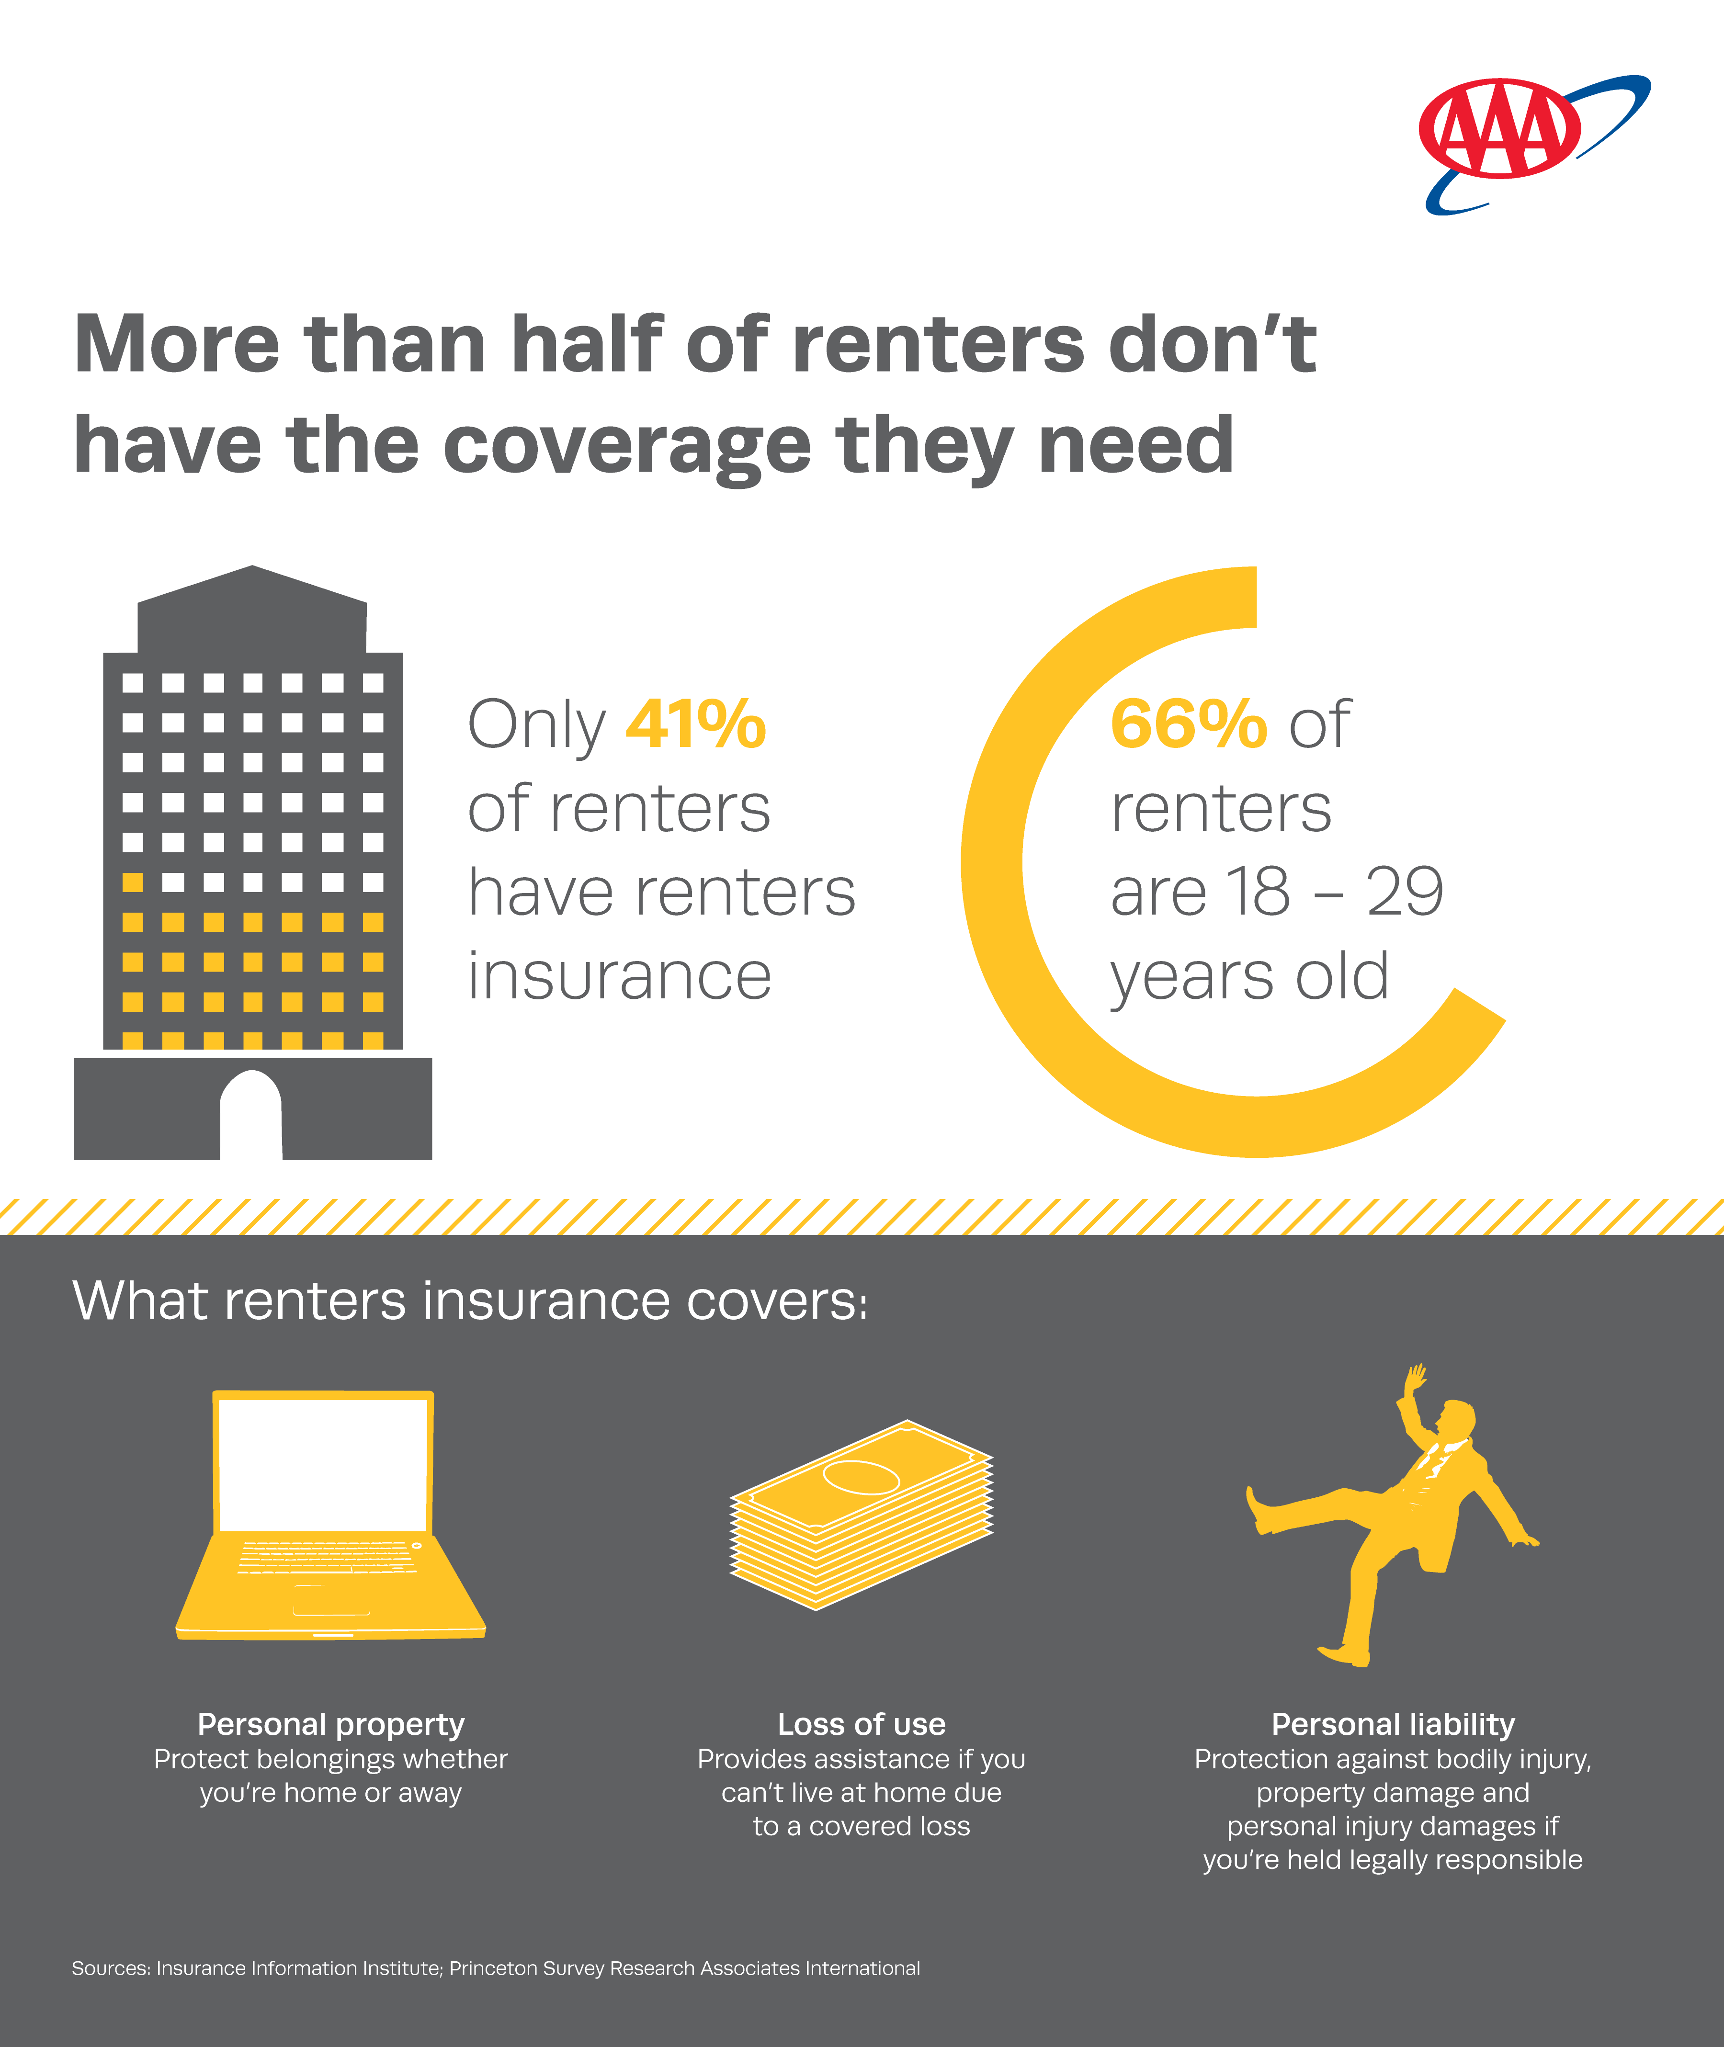 Protect Yourself And Your Property With Renters Insurance Aaa Com Insurance Renters Insurance Renter Home Insurance